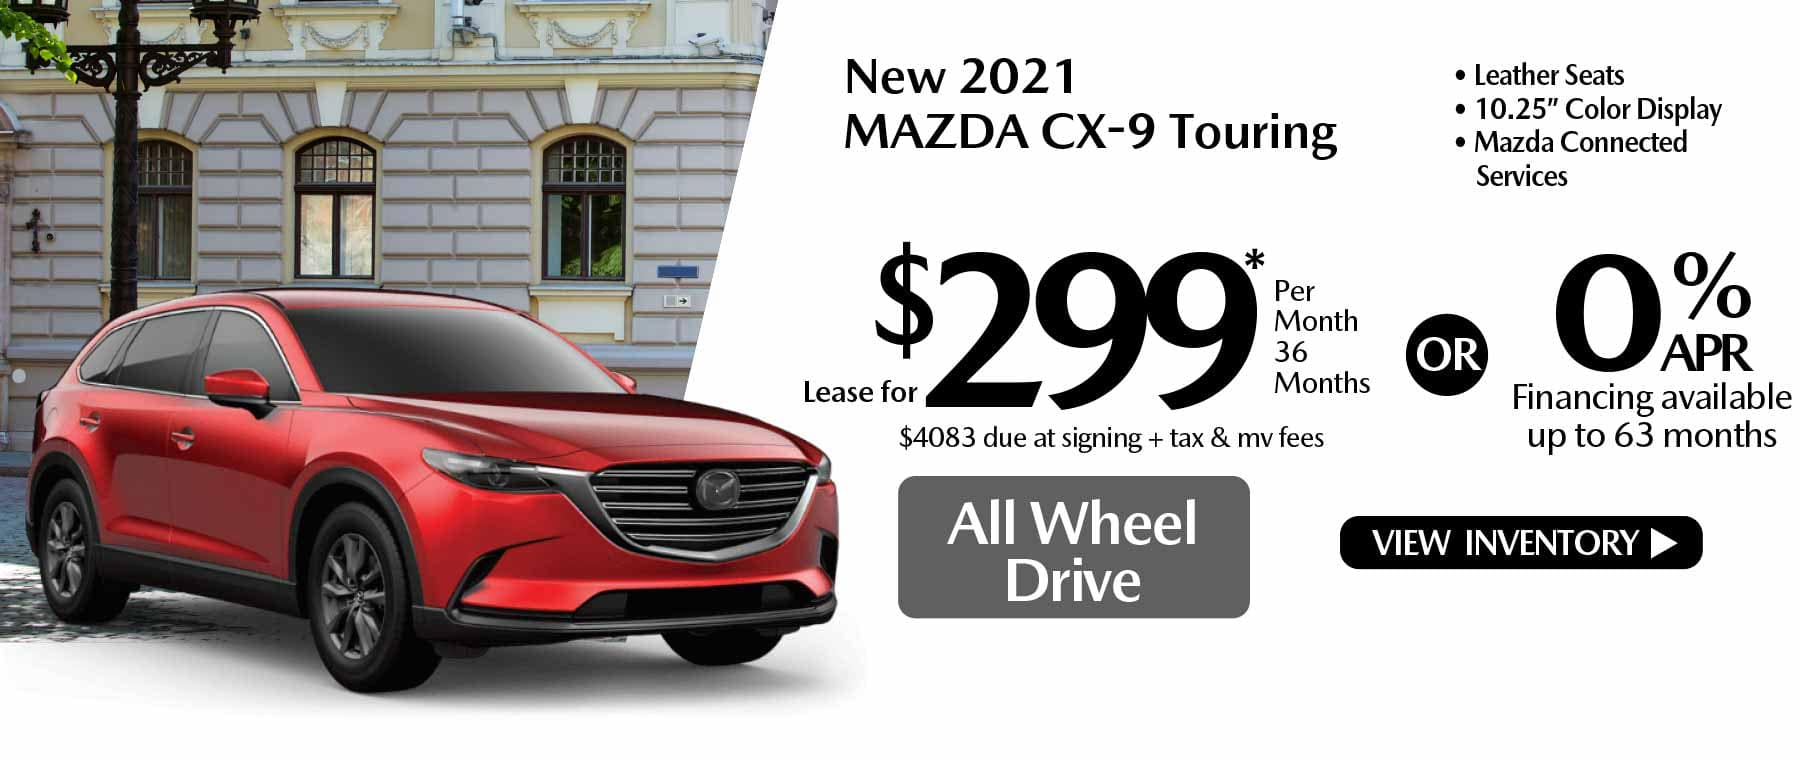 04 CX-9 hi New Lease Special Offer Mazda of New Rochelle NY